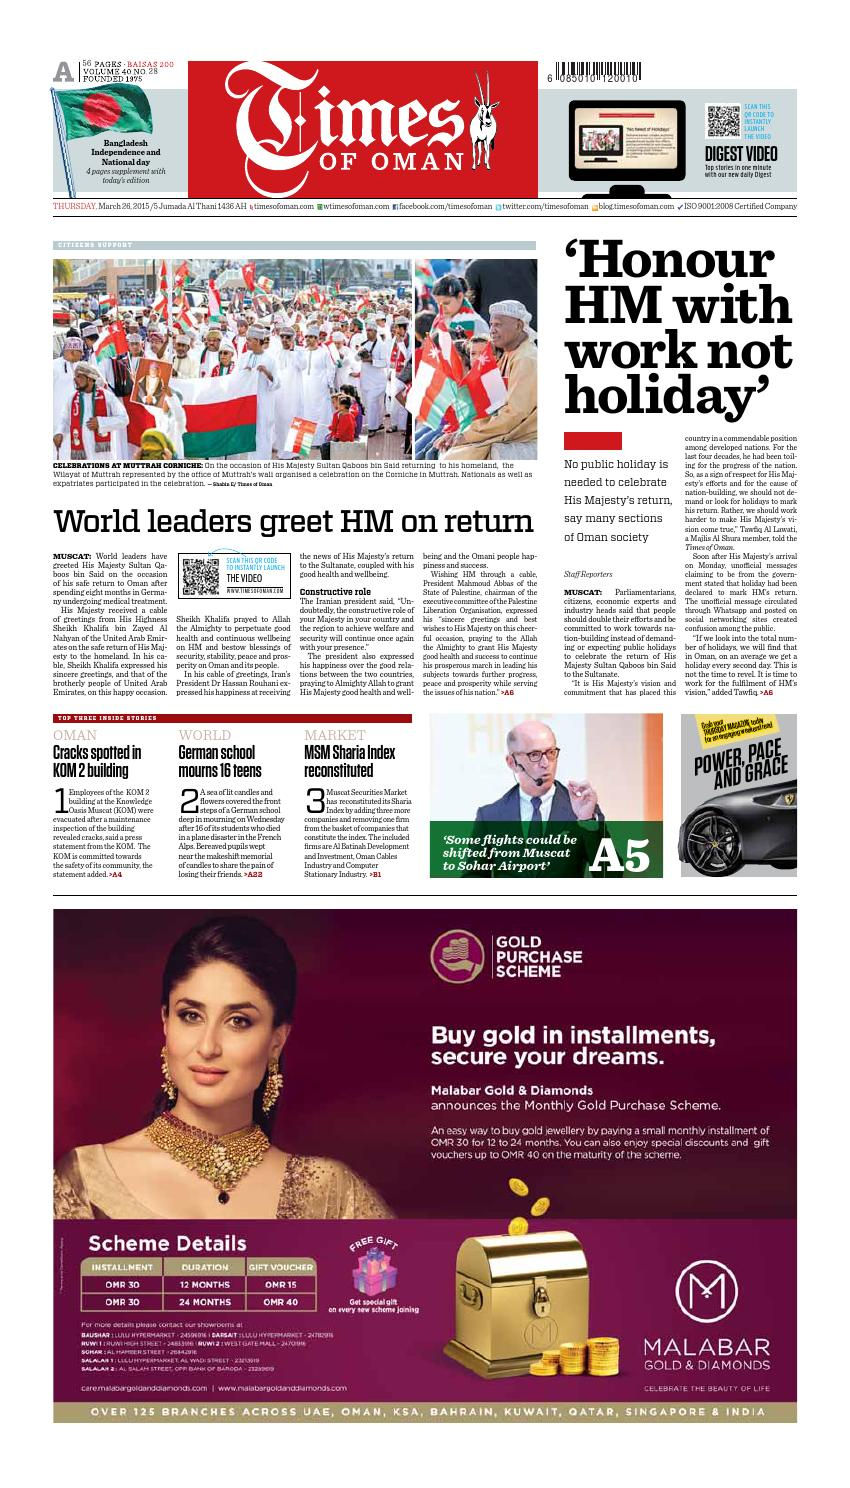 Times Of Oman - March 26, 2015 by Muscat Media Group - issuu